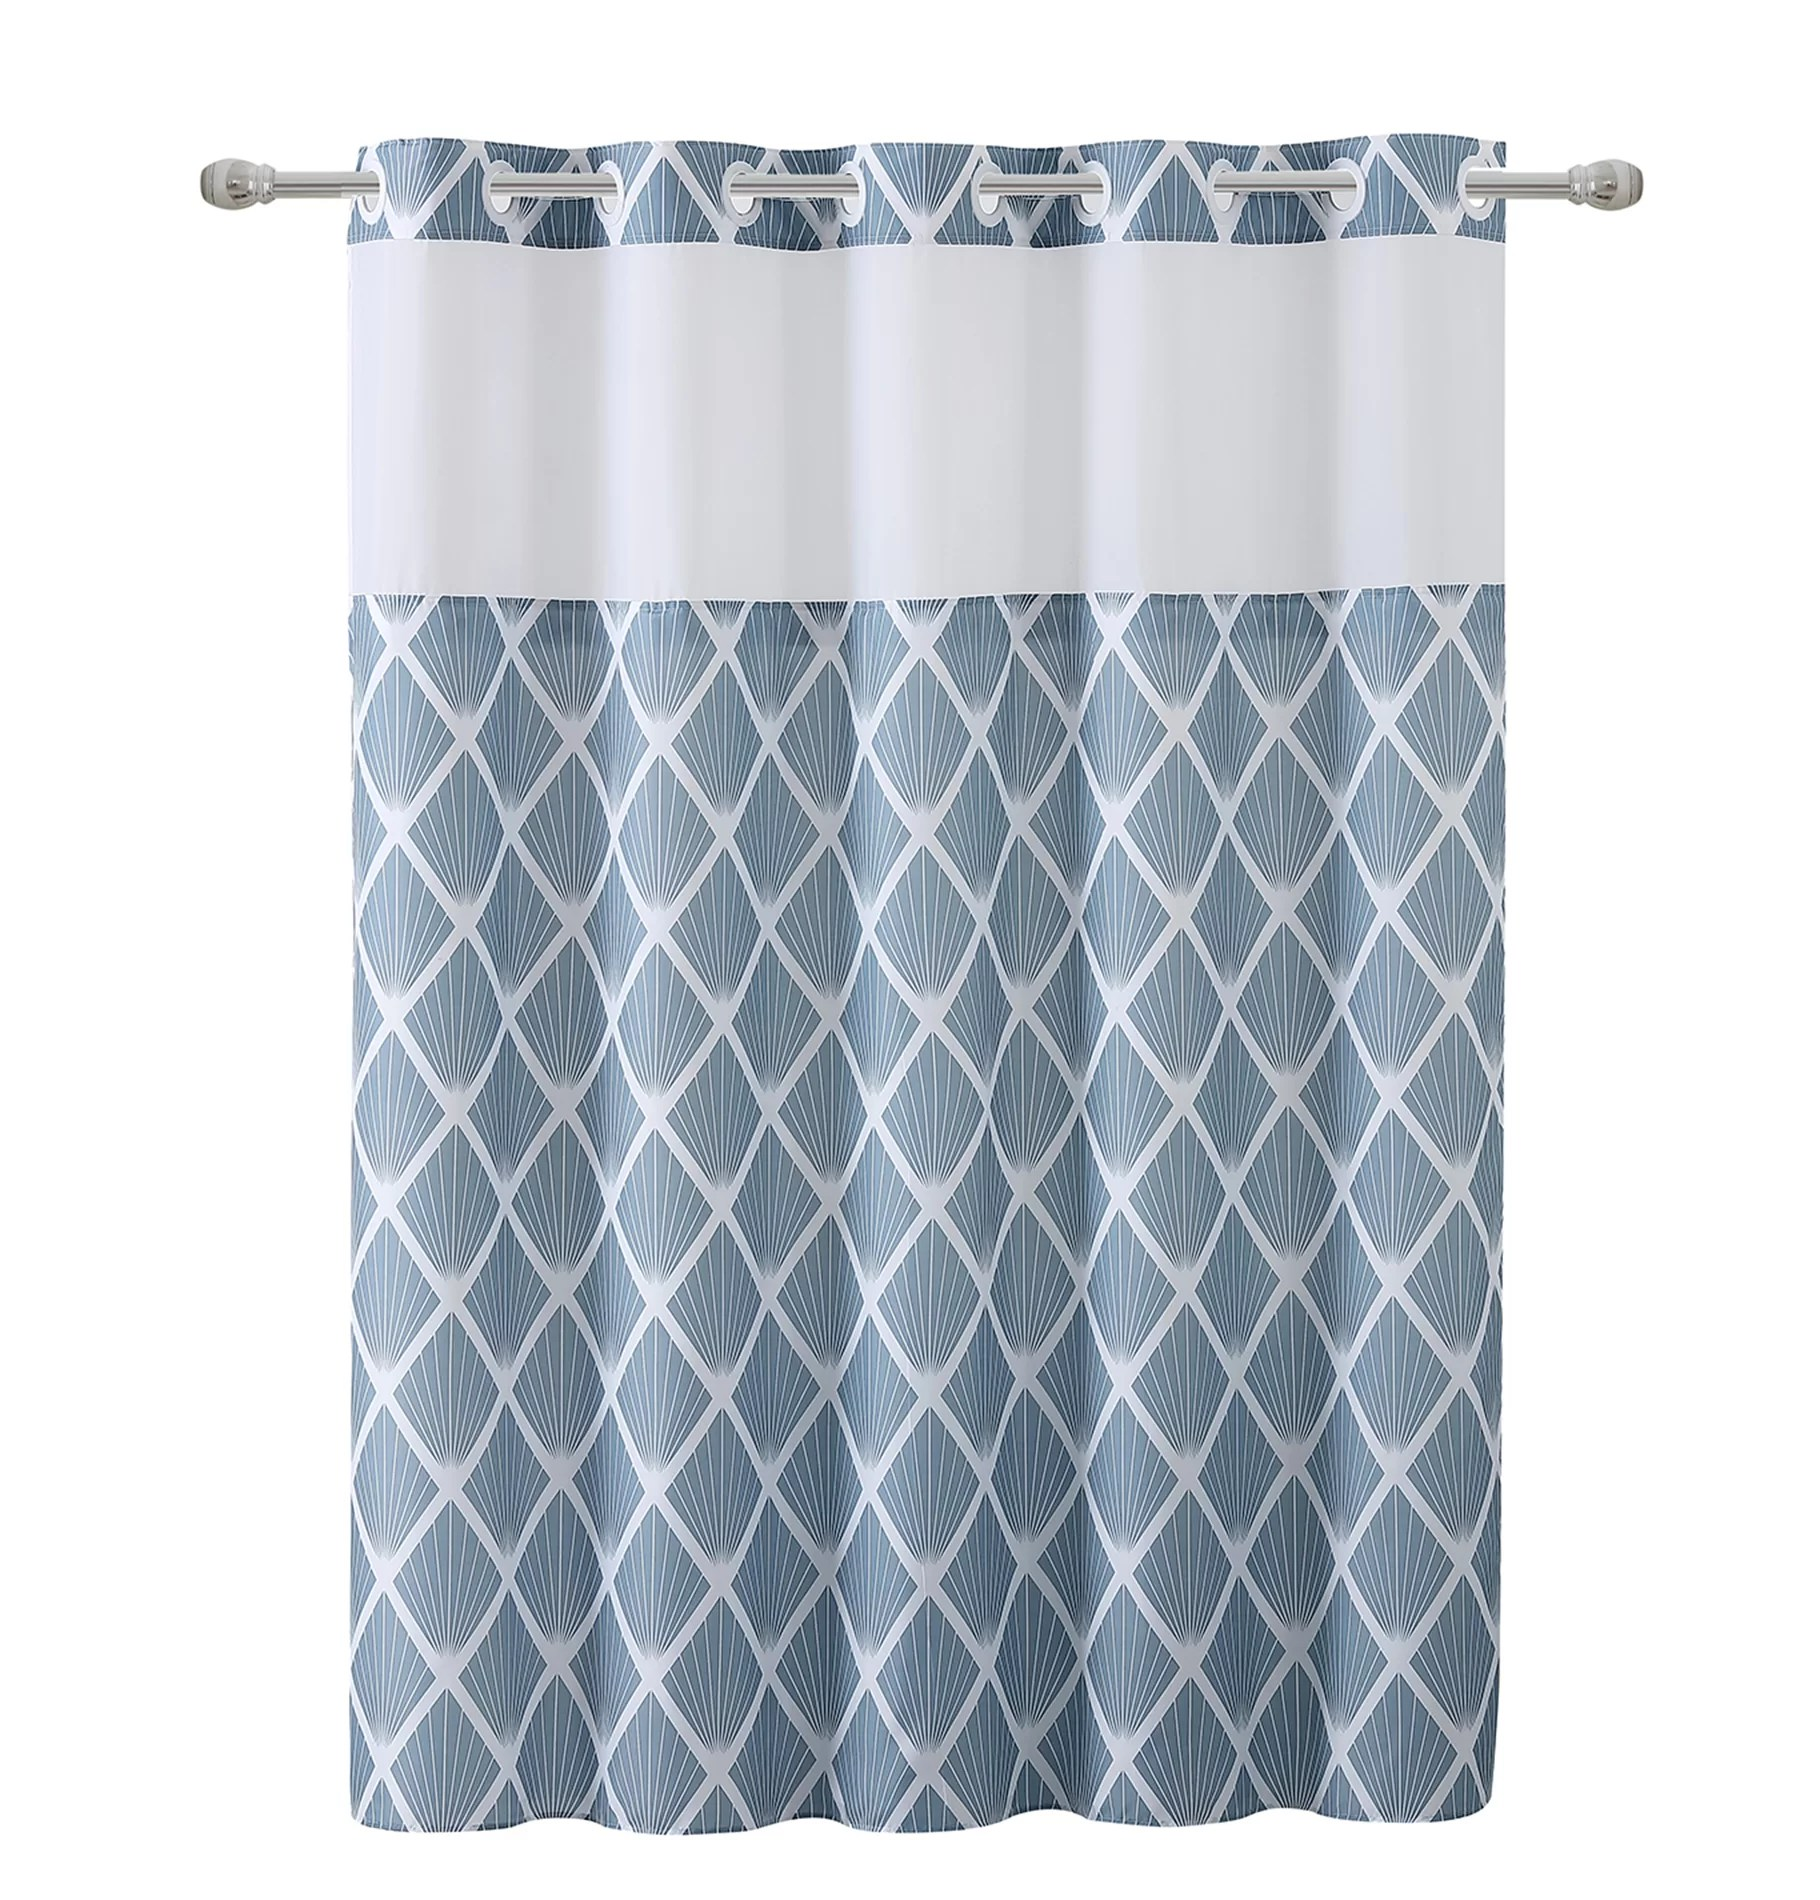 hookless shower curtain dobby pique with peva liner